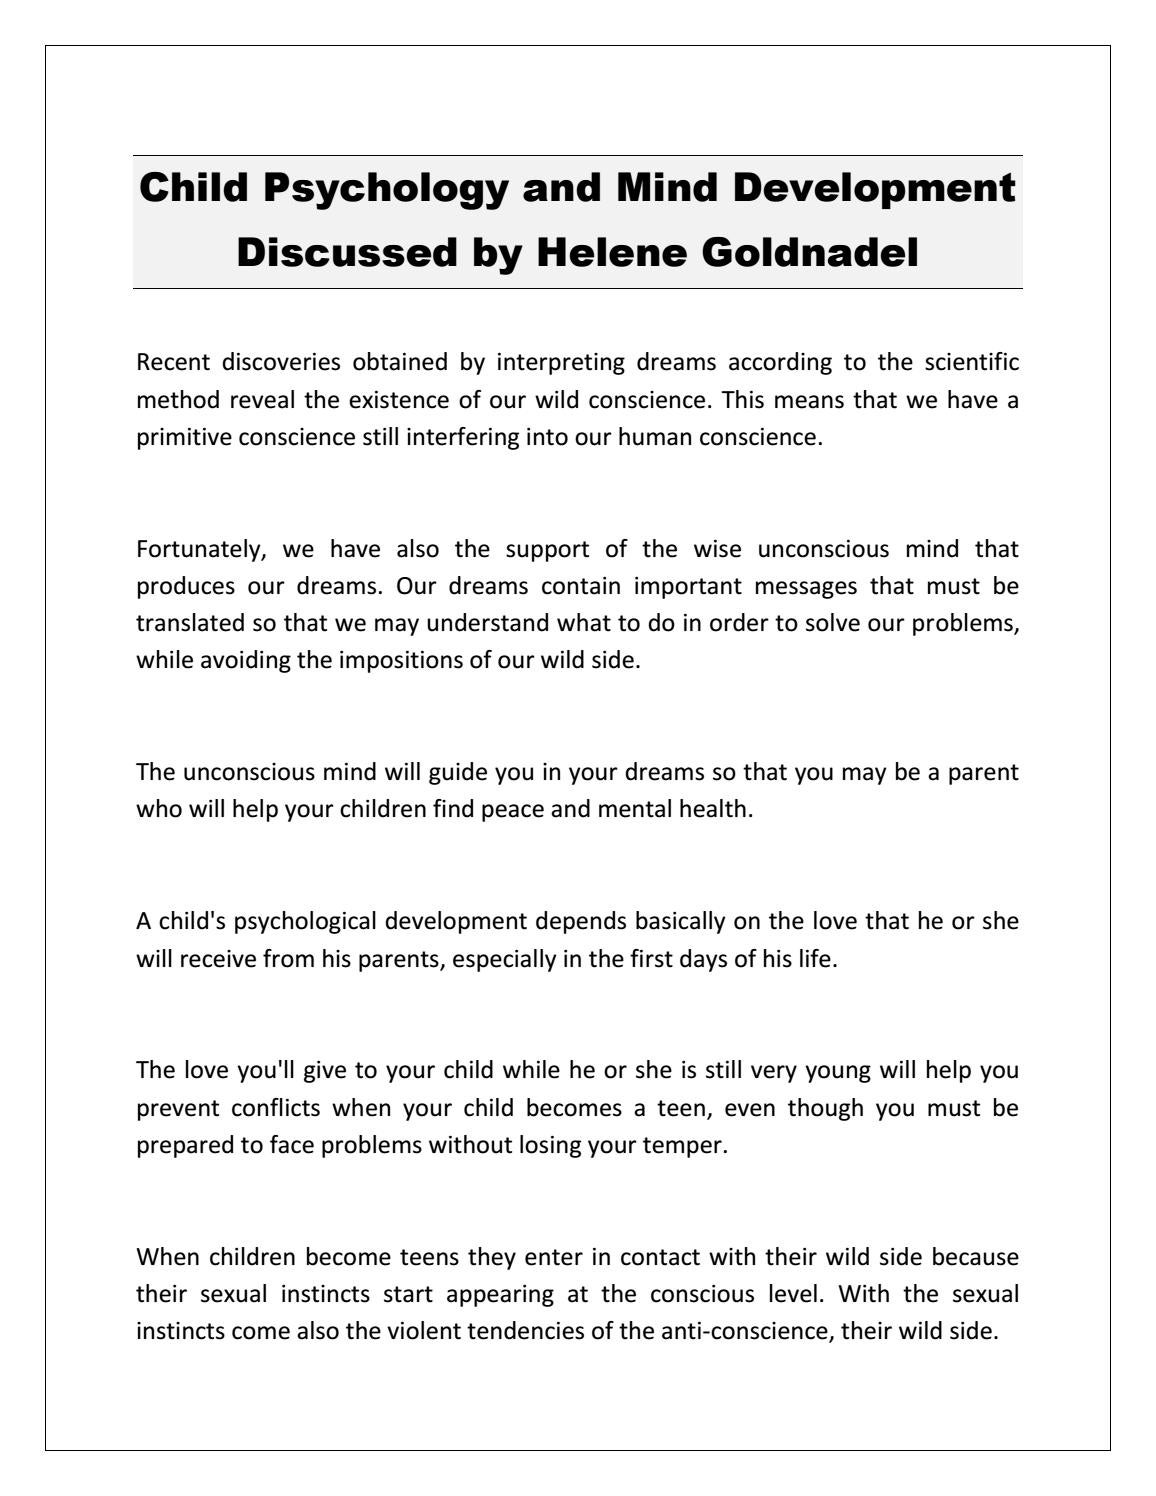 Child Psychology and Mind Development Discussed by Helene ...